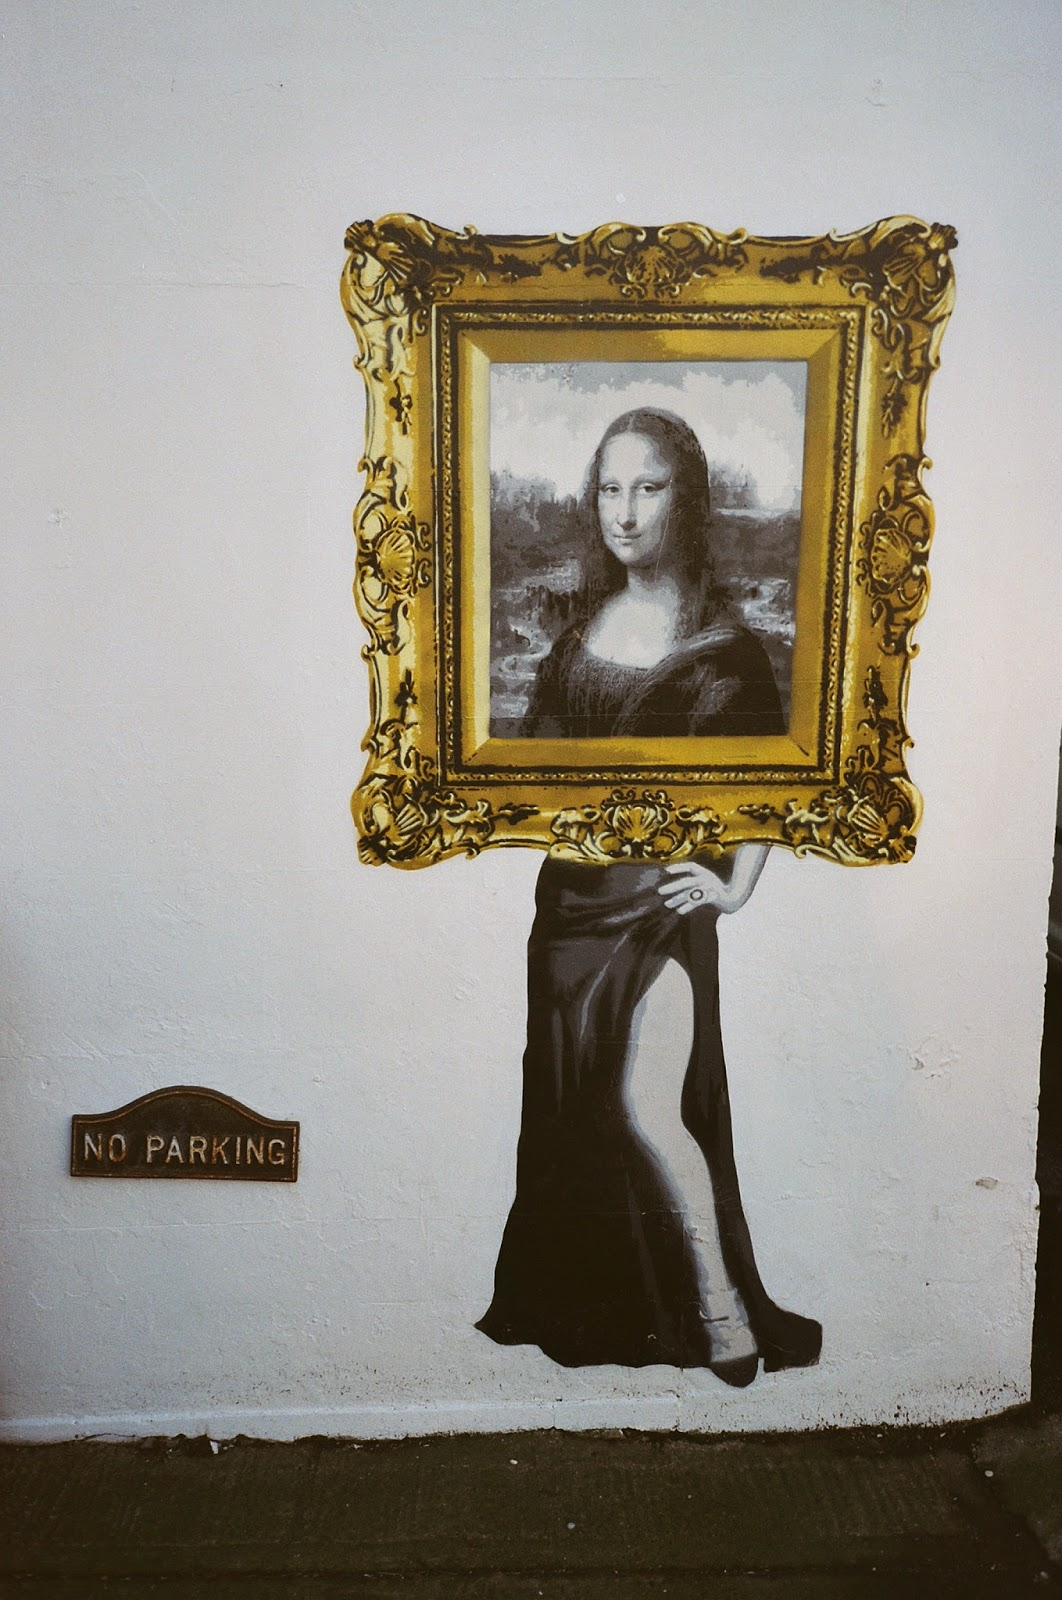 Mona Lisa, Leonardo Da Vinci, Whitstable, Kent, No Parking sign, Grafitti, 2015 General election,Visual Athletics Club